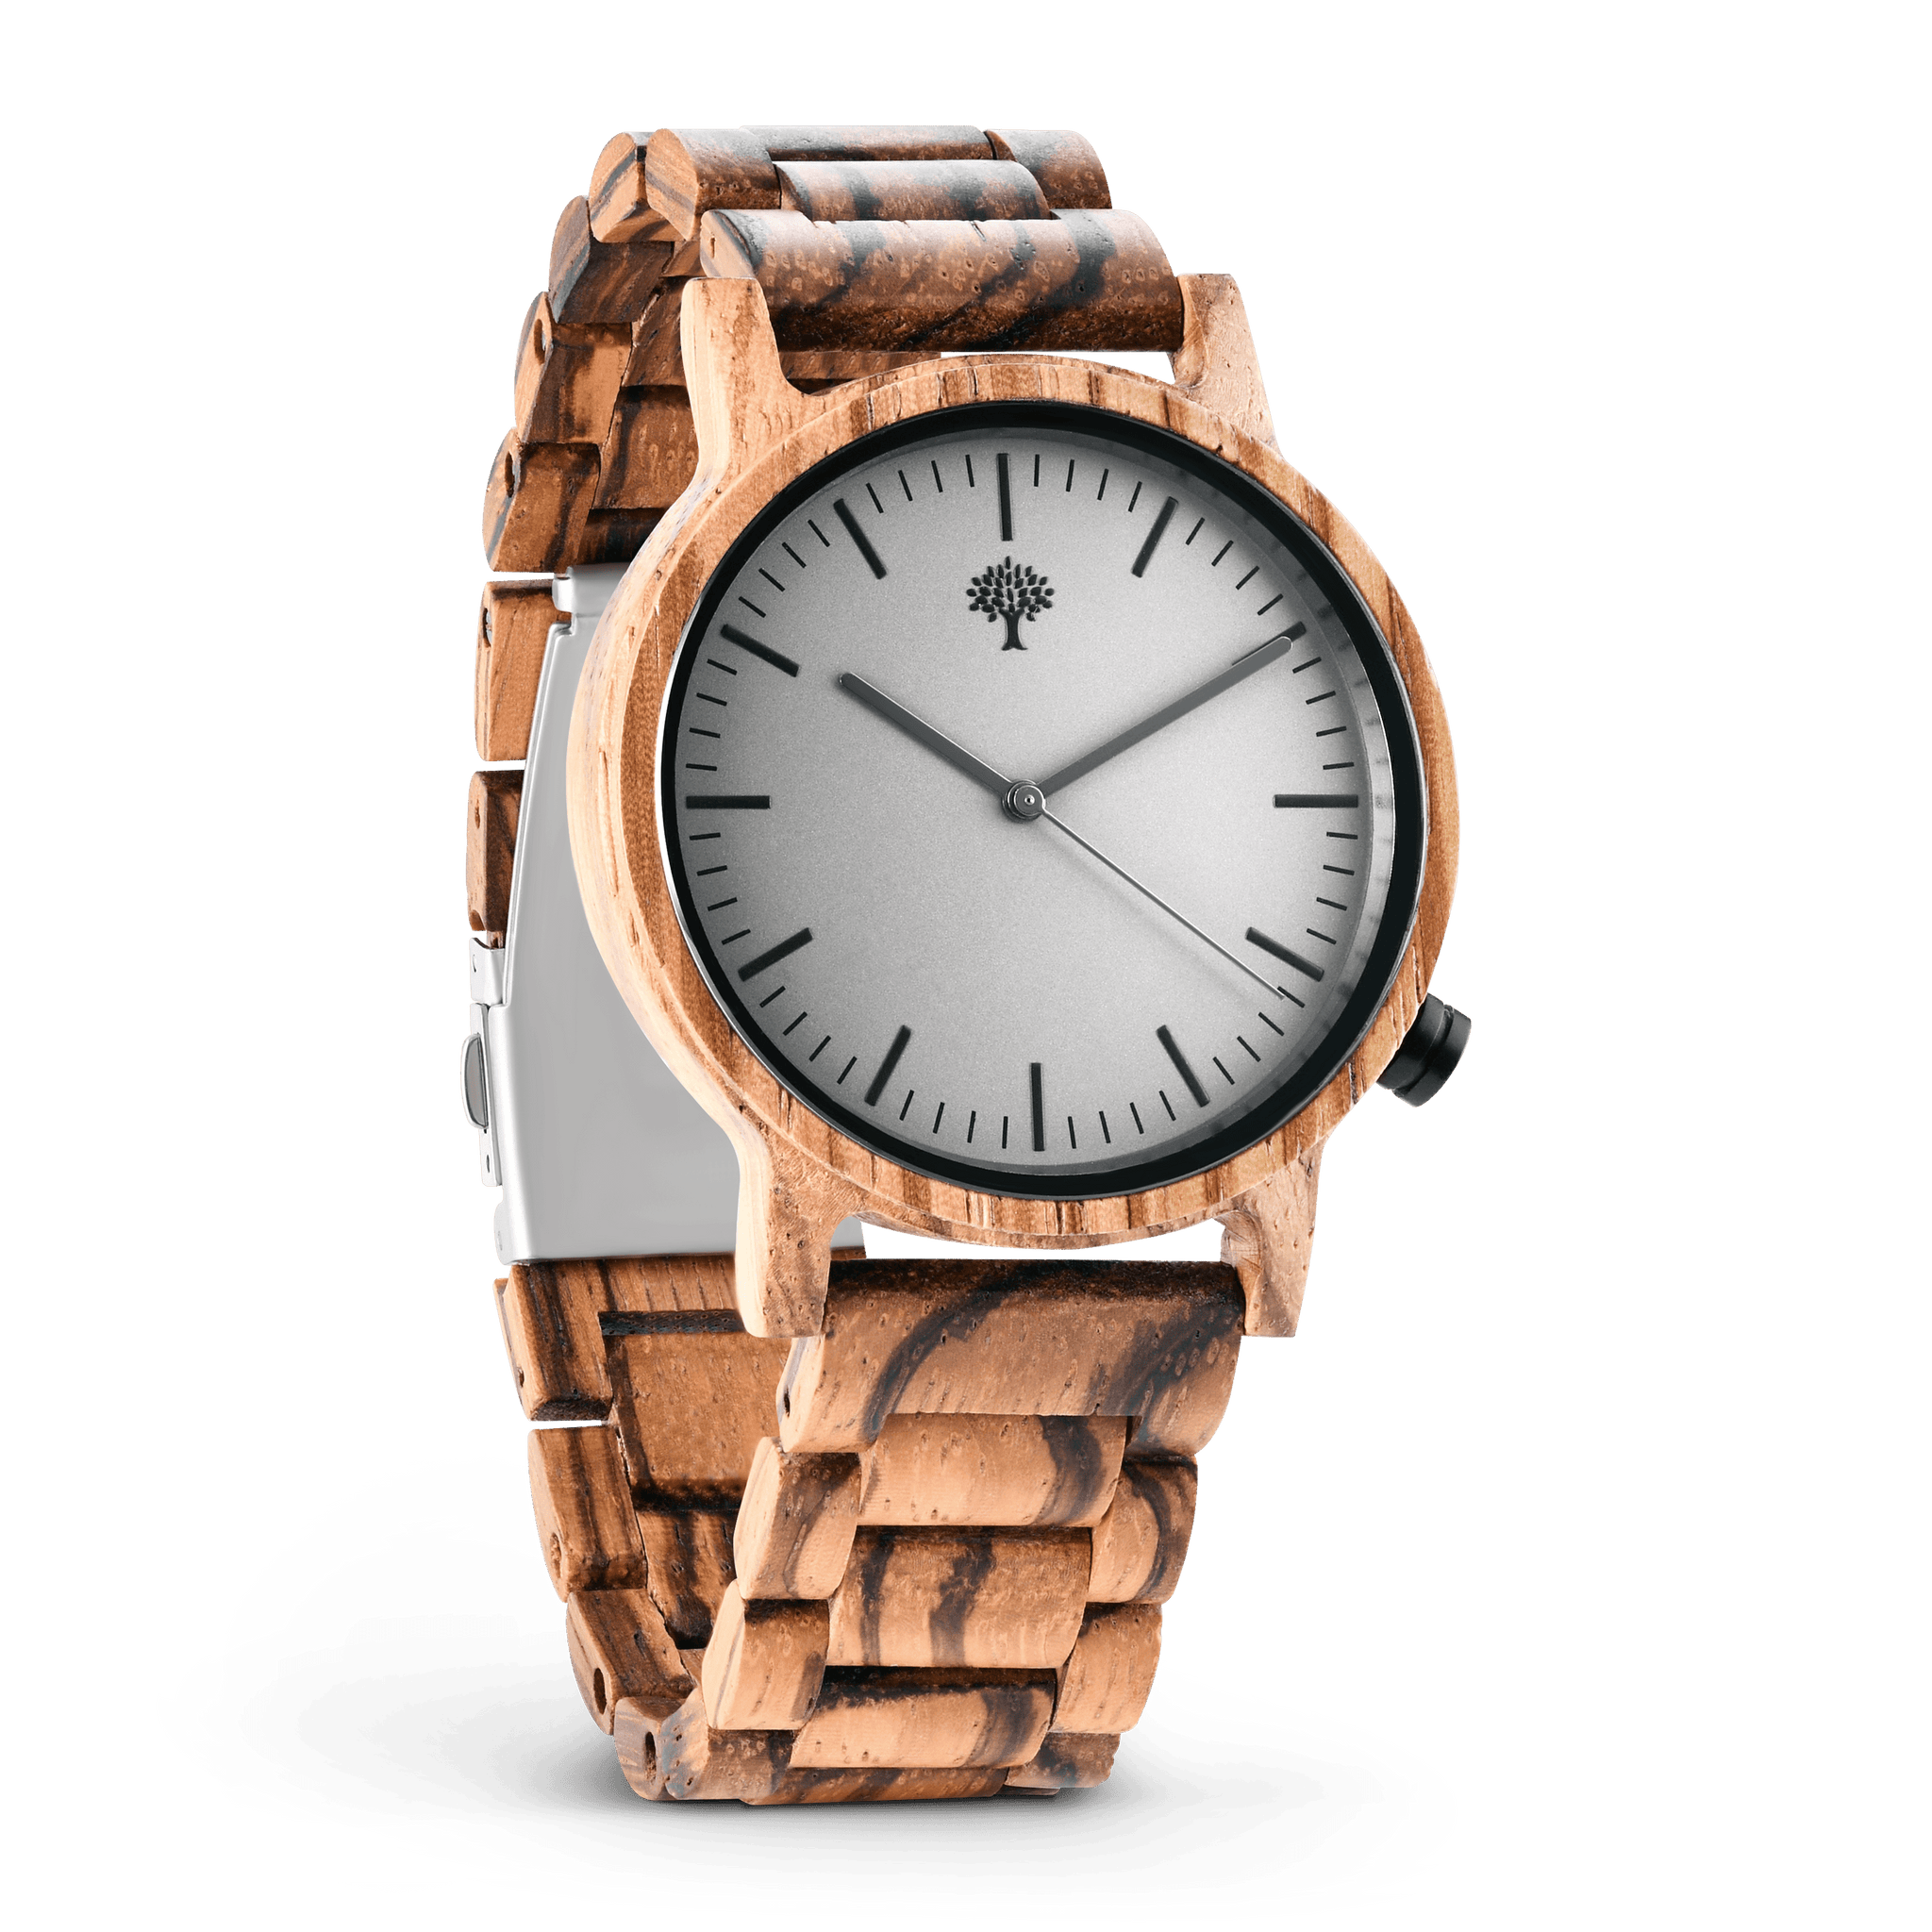 piece men for store with sale wood cse supernova new online quartz s popular saat logo bird watch mens movement bobo custom on oem in watches japan wristwatches fashion wooden product